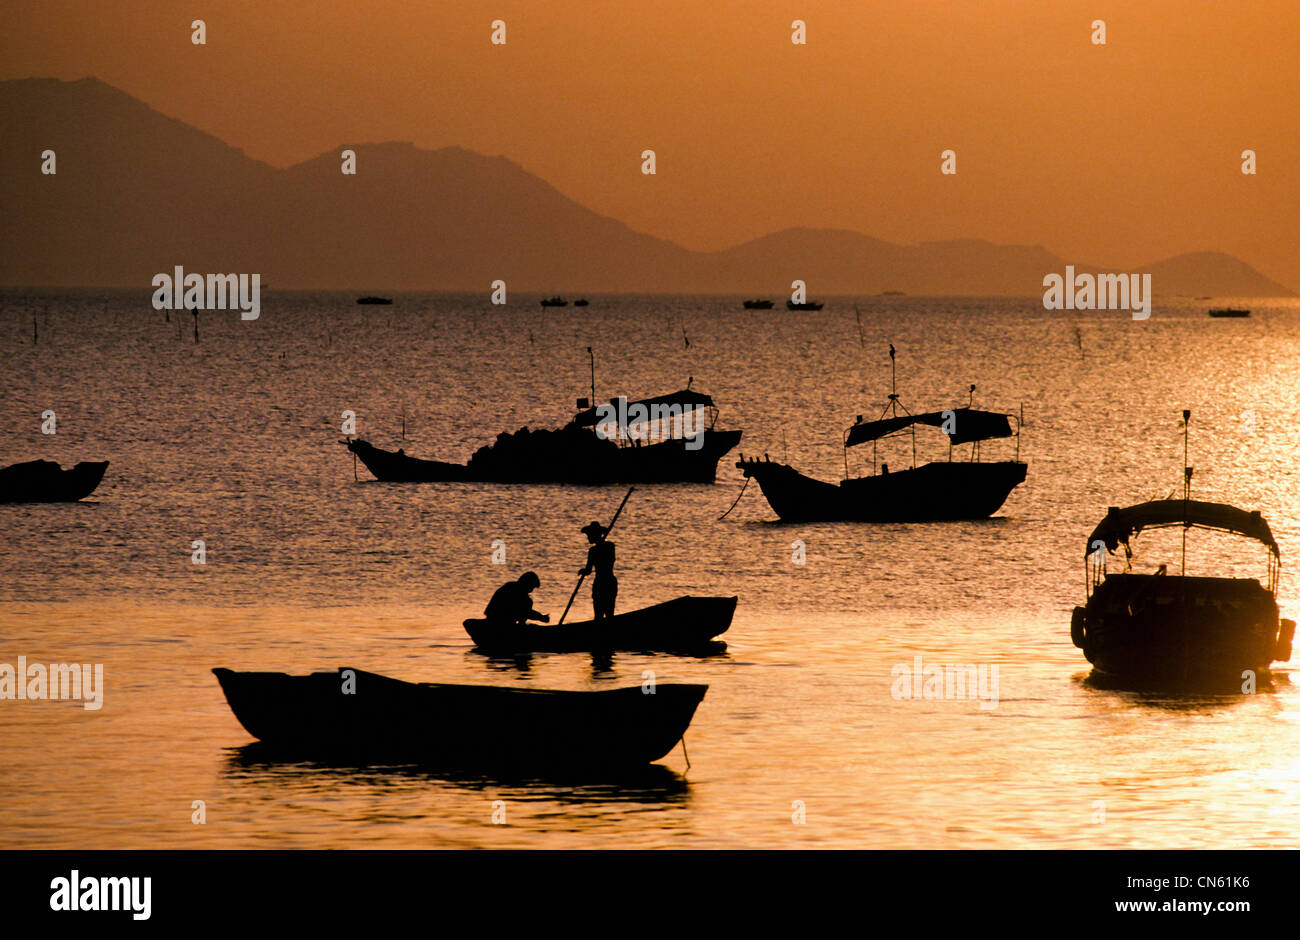 sampans at sunset in South China Sea off Hong Kong New Territories Coast China - Stock Image